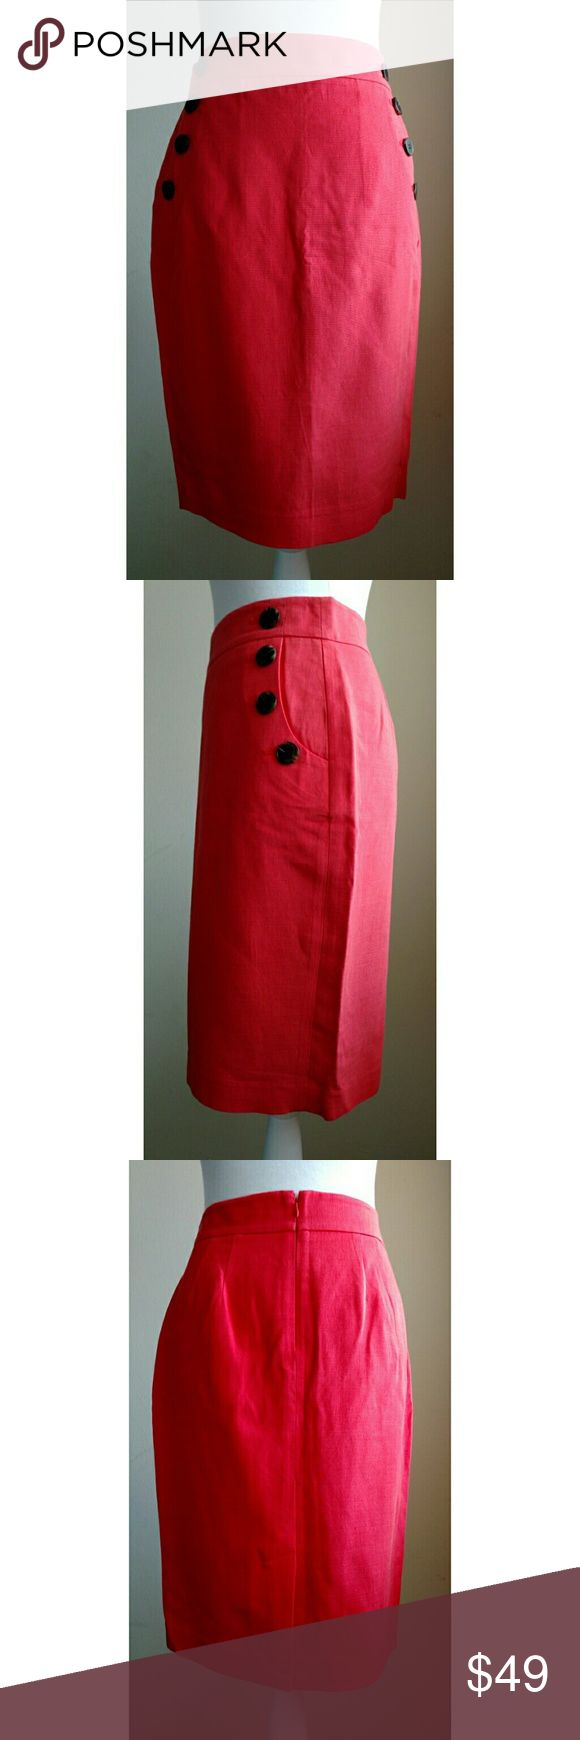 Ann Taylor LOFT Sailor Pencil Skirt - Size 4 - NWT Ann Taylor LOFT Sailor Pencil Skirt - Size 4 - New with Tags (NWT)  Sailor style pencil skirt in bi-stretch fabric has for buttons lining each pocket.  Hidden back zipper.  Back vent. Front slash pockets.  Lined. Wear to work.  Color:  Bright Red Coral  Style: 334016  Materials: 75% rayon, 25% cotton; Lining: 100% polyester  Dry clean  No stains, holes, or other damage LOFT Skirts Pencil